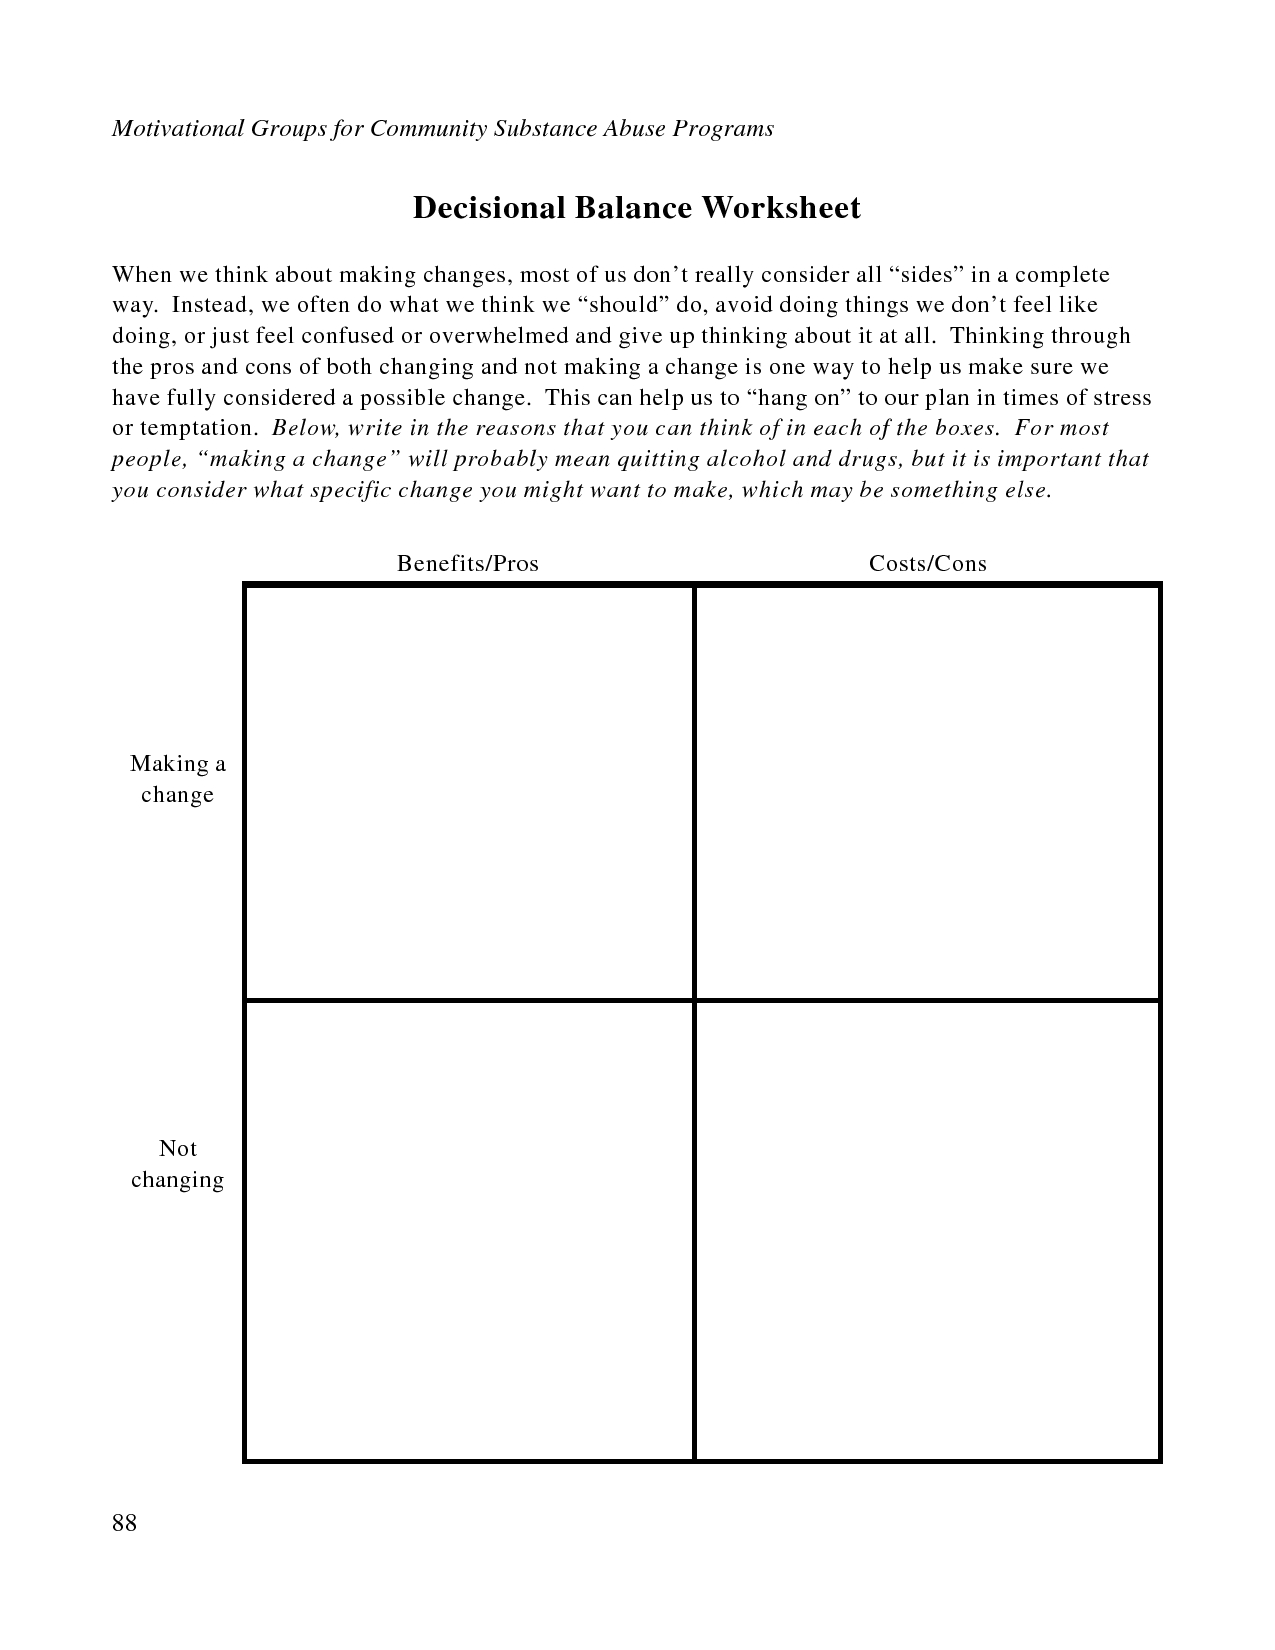 Worksheet Free Mental Health Worksheets Davezan L For